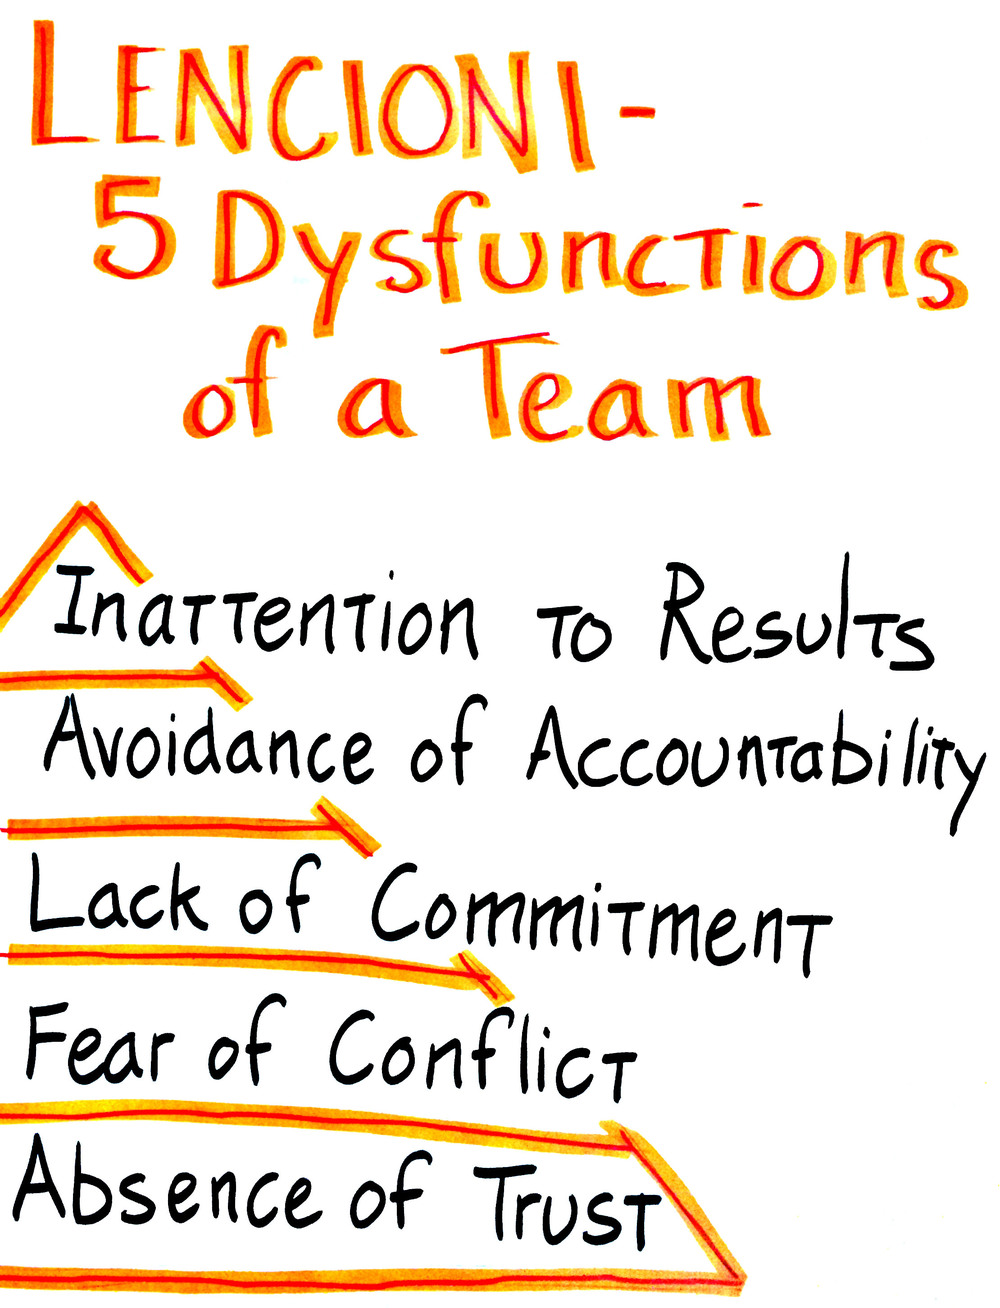 holacracy s response to the five dysfunctions of a team living orgs